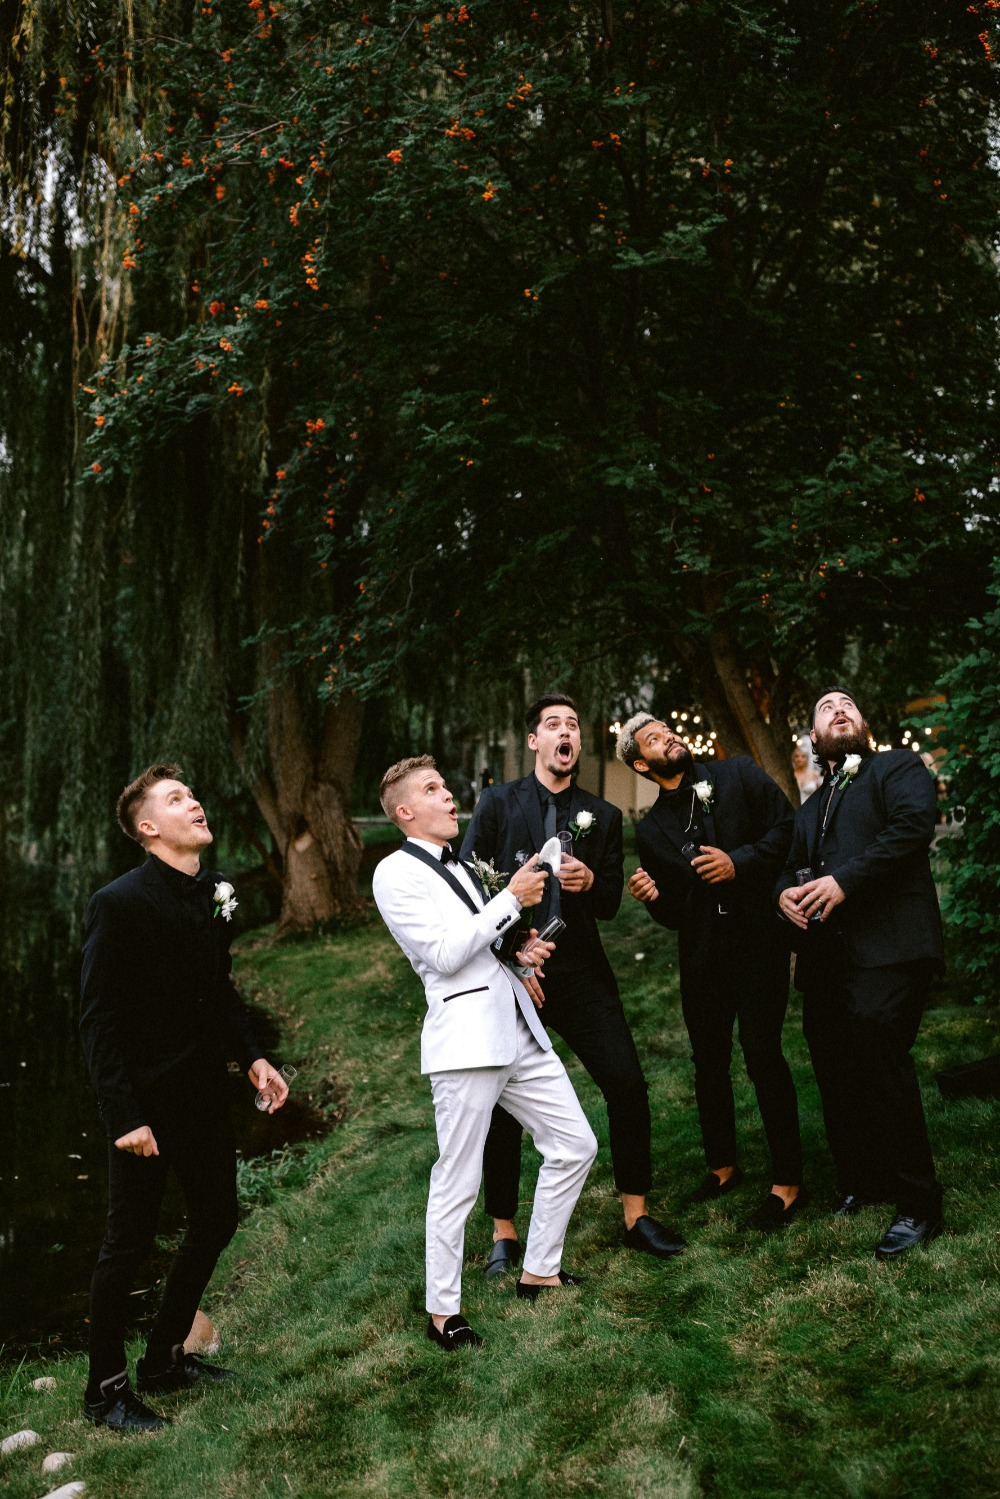 fun photo idea for the groom and his men